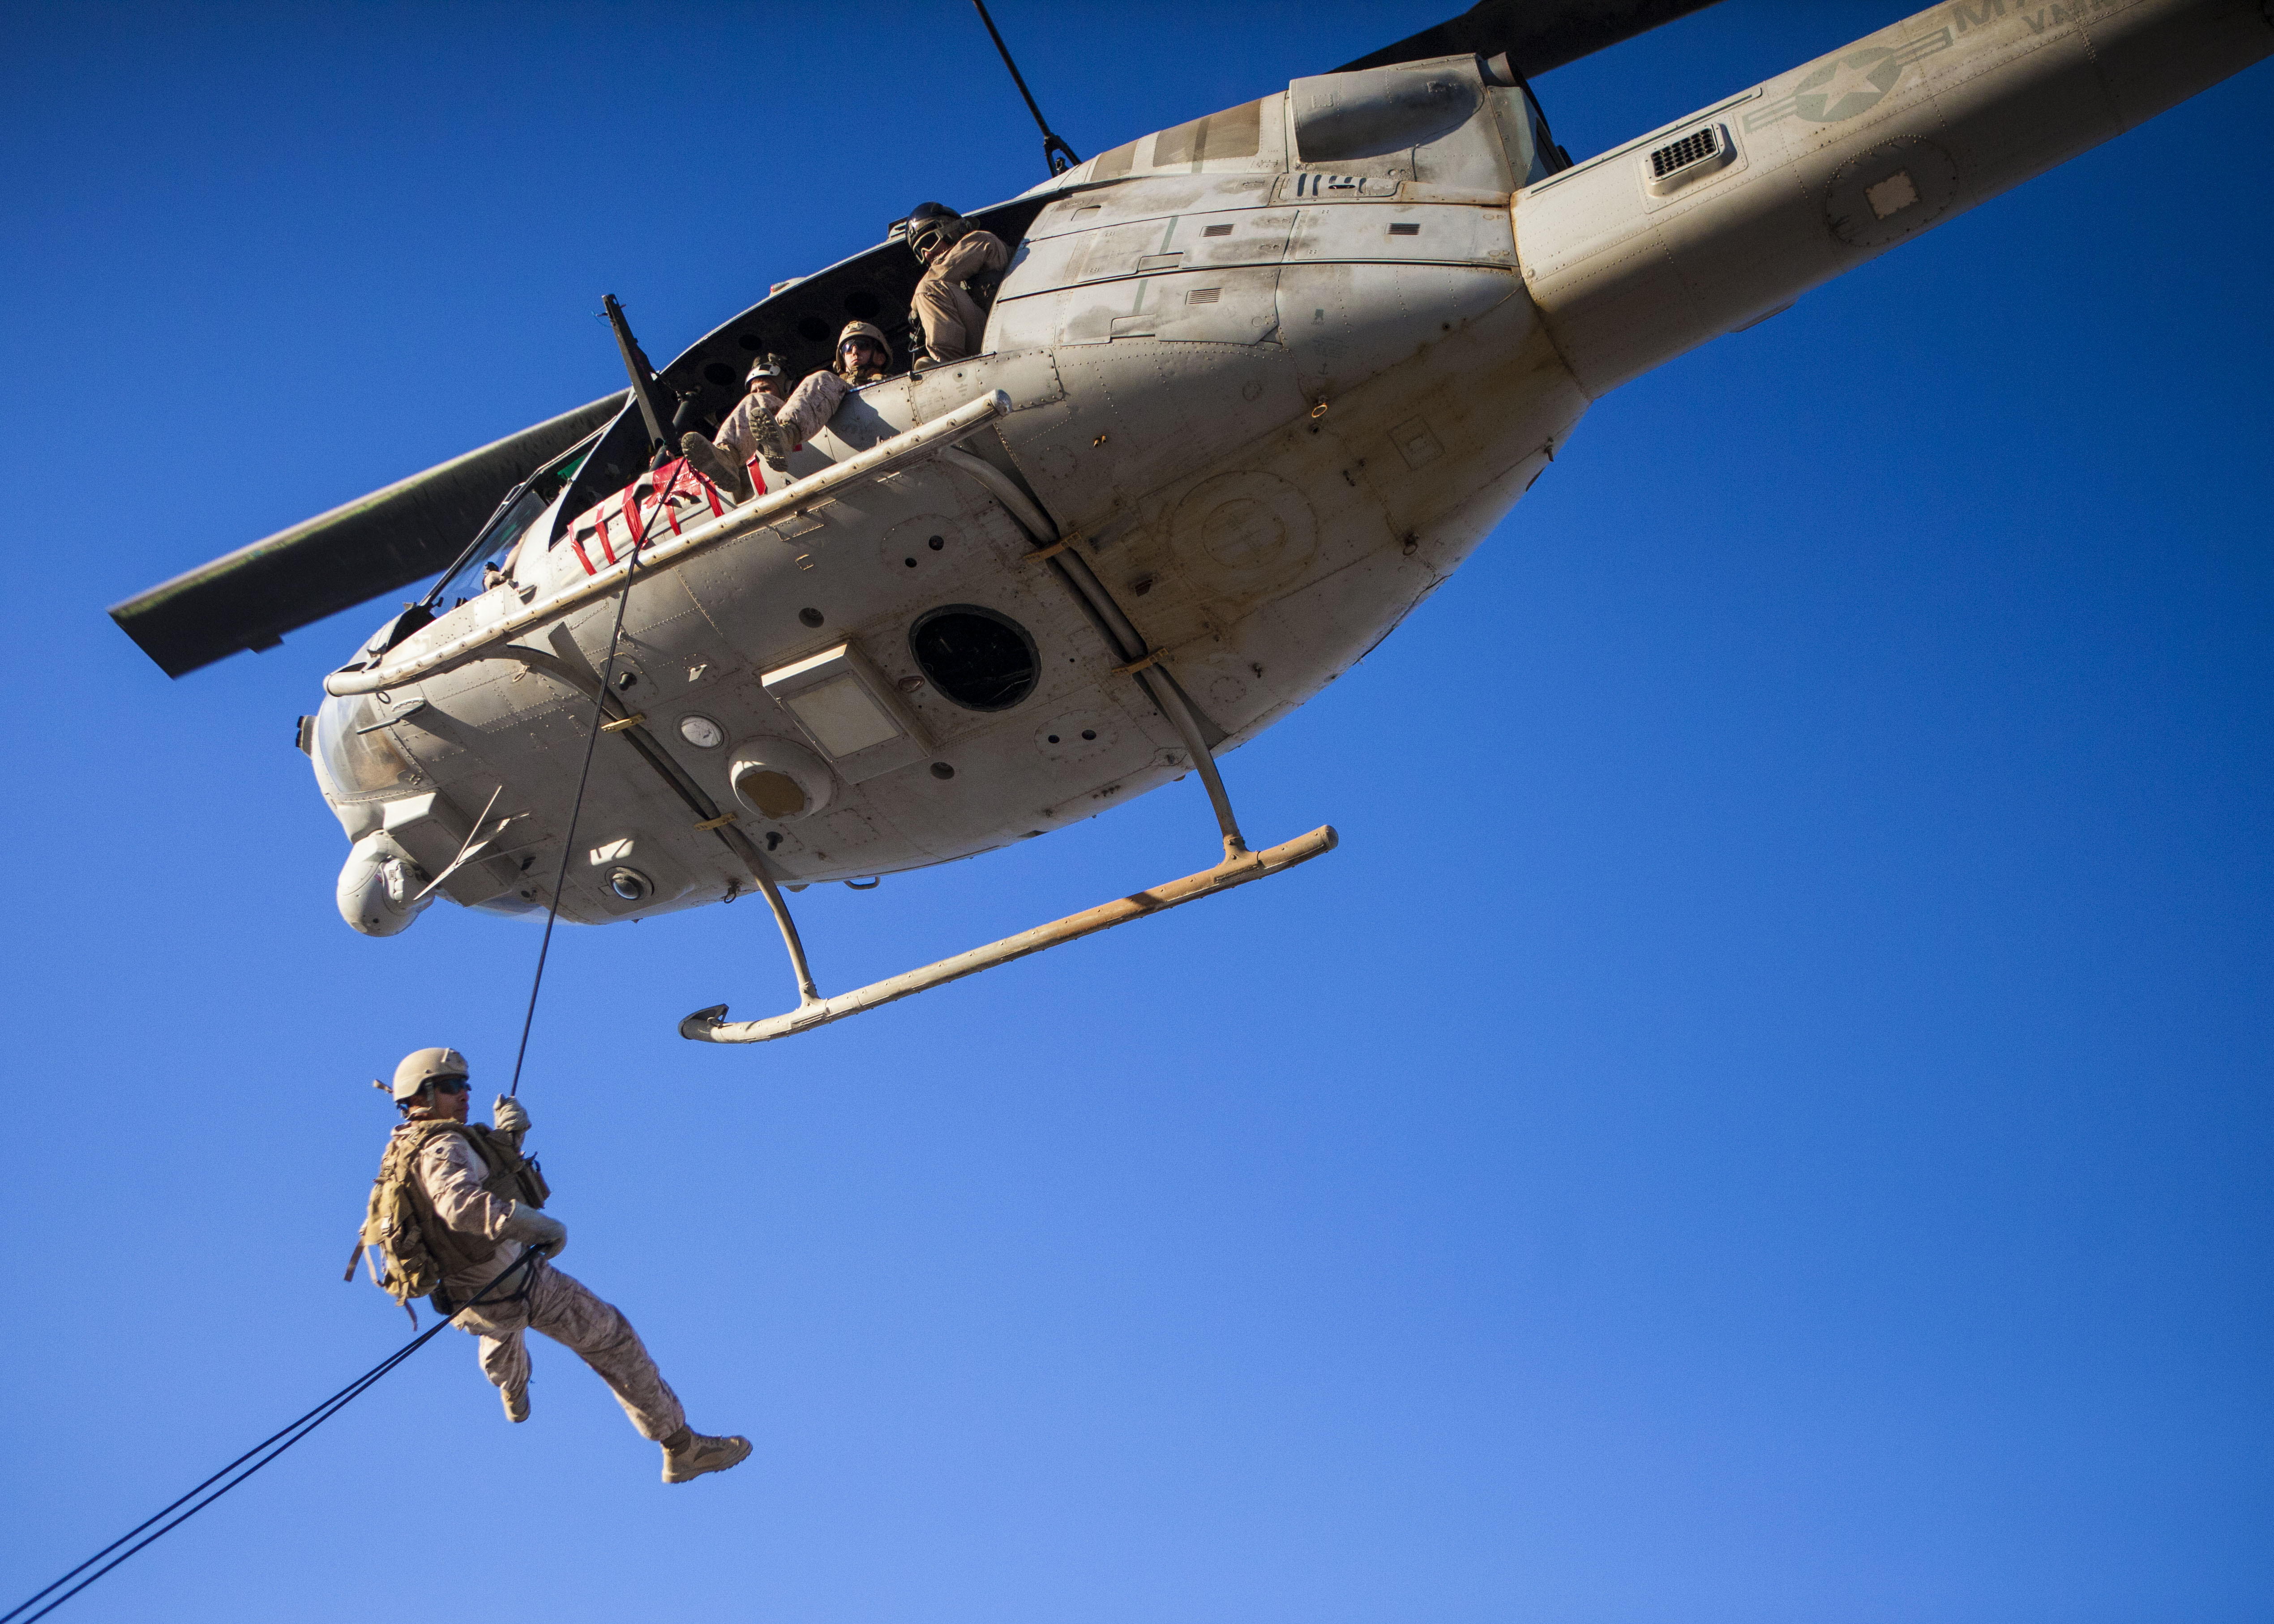 File:A_U.S._Marine,_bottom,_with_the_26th_Marine_Expeditionary_Unit's_Maritime_Raid_Force_rappels_from_a_UH 1N_Iroquois_helicopter_assigned_to_Marine_Medium_Tiltrotor_Squadron_(VMM)_266_during_a_helicopter_rope_130611 M SO289 017 on Central Unit